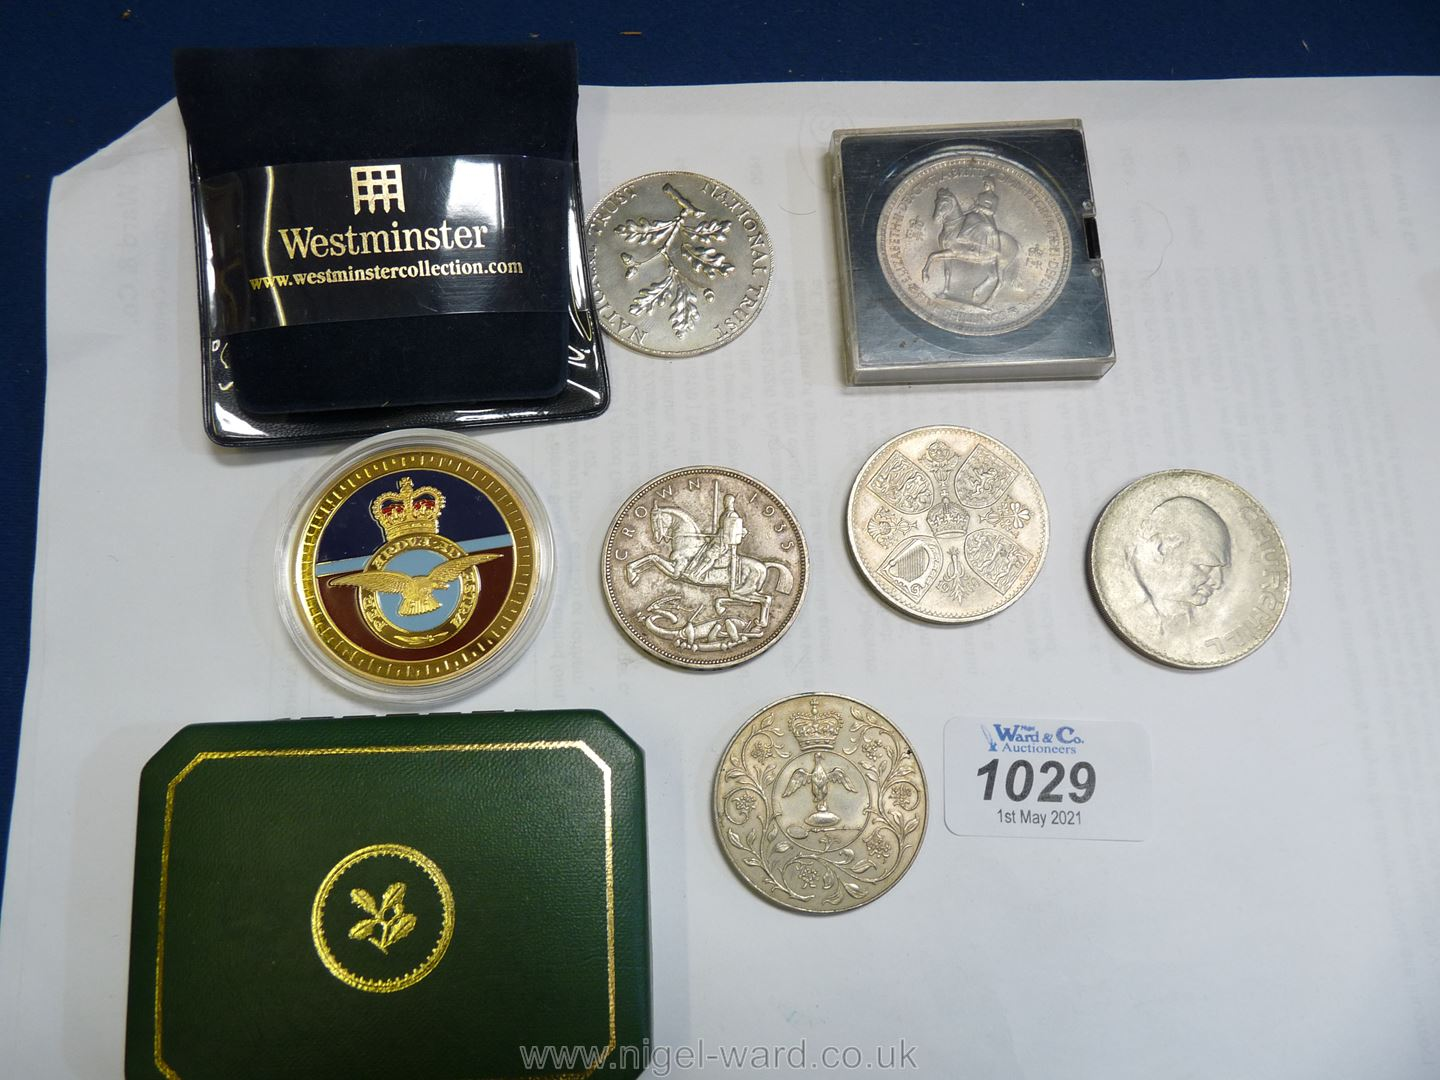 Four Crowns including Churchill, Jubilee, National Trust and George V, five shilling piece etc.